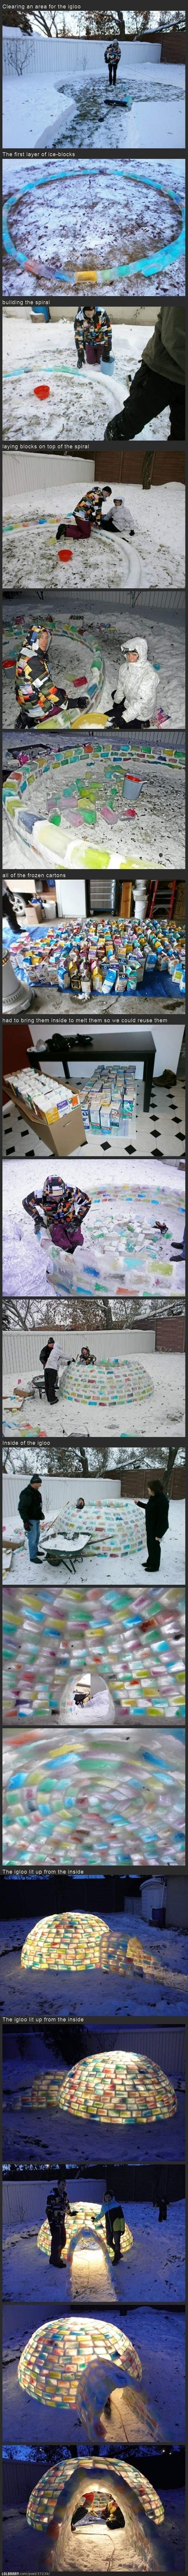 Rainbow Igloo - so cool that this is from Edmonton!